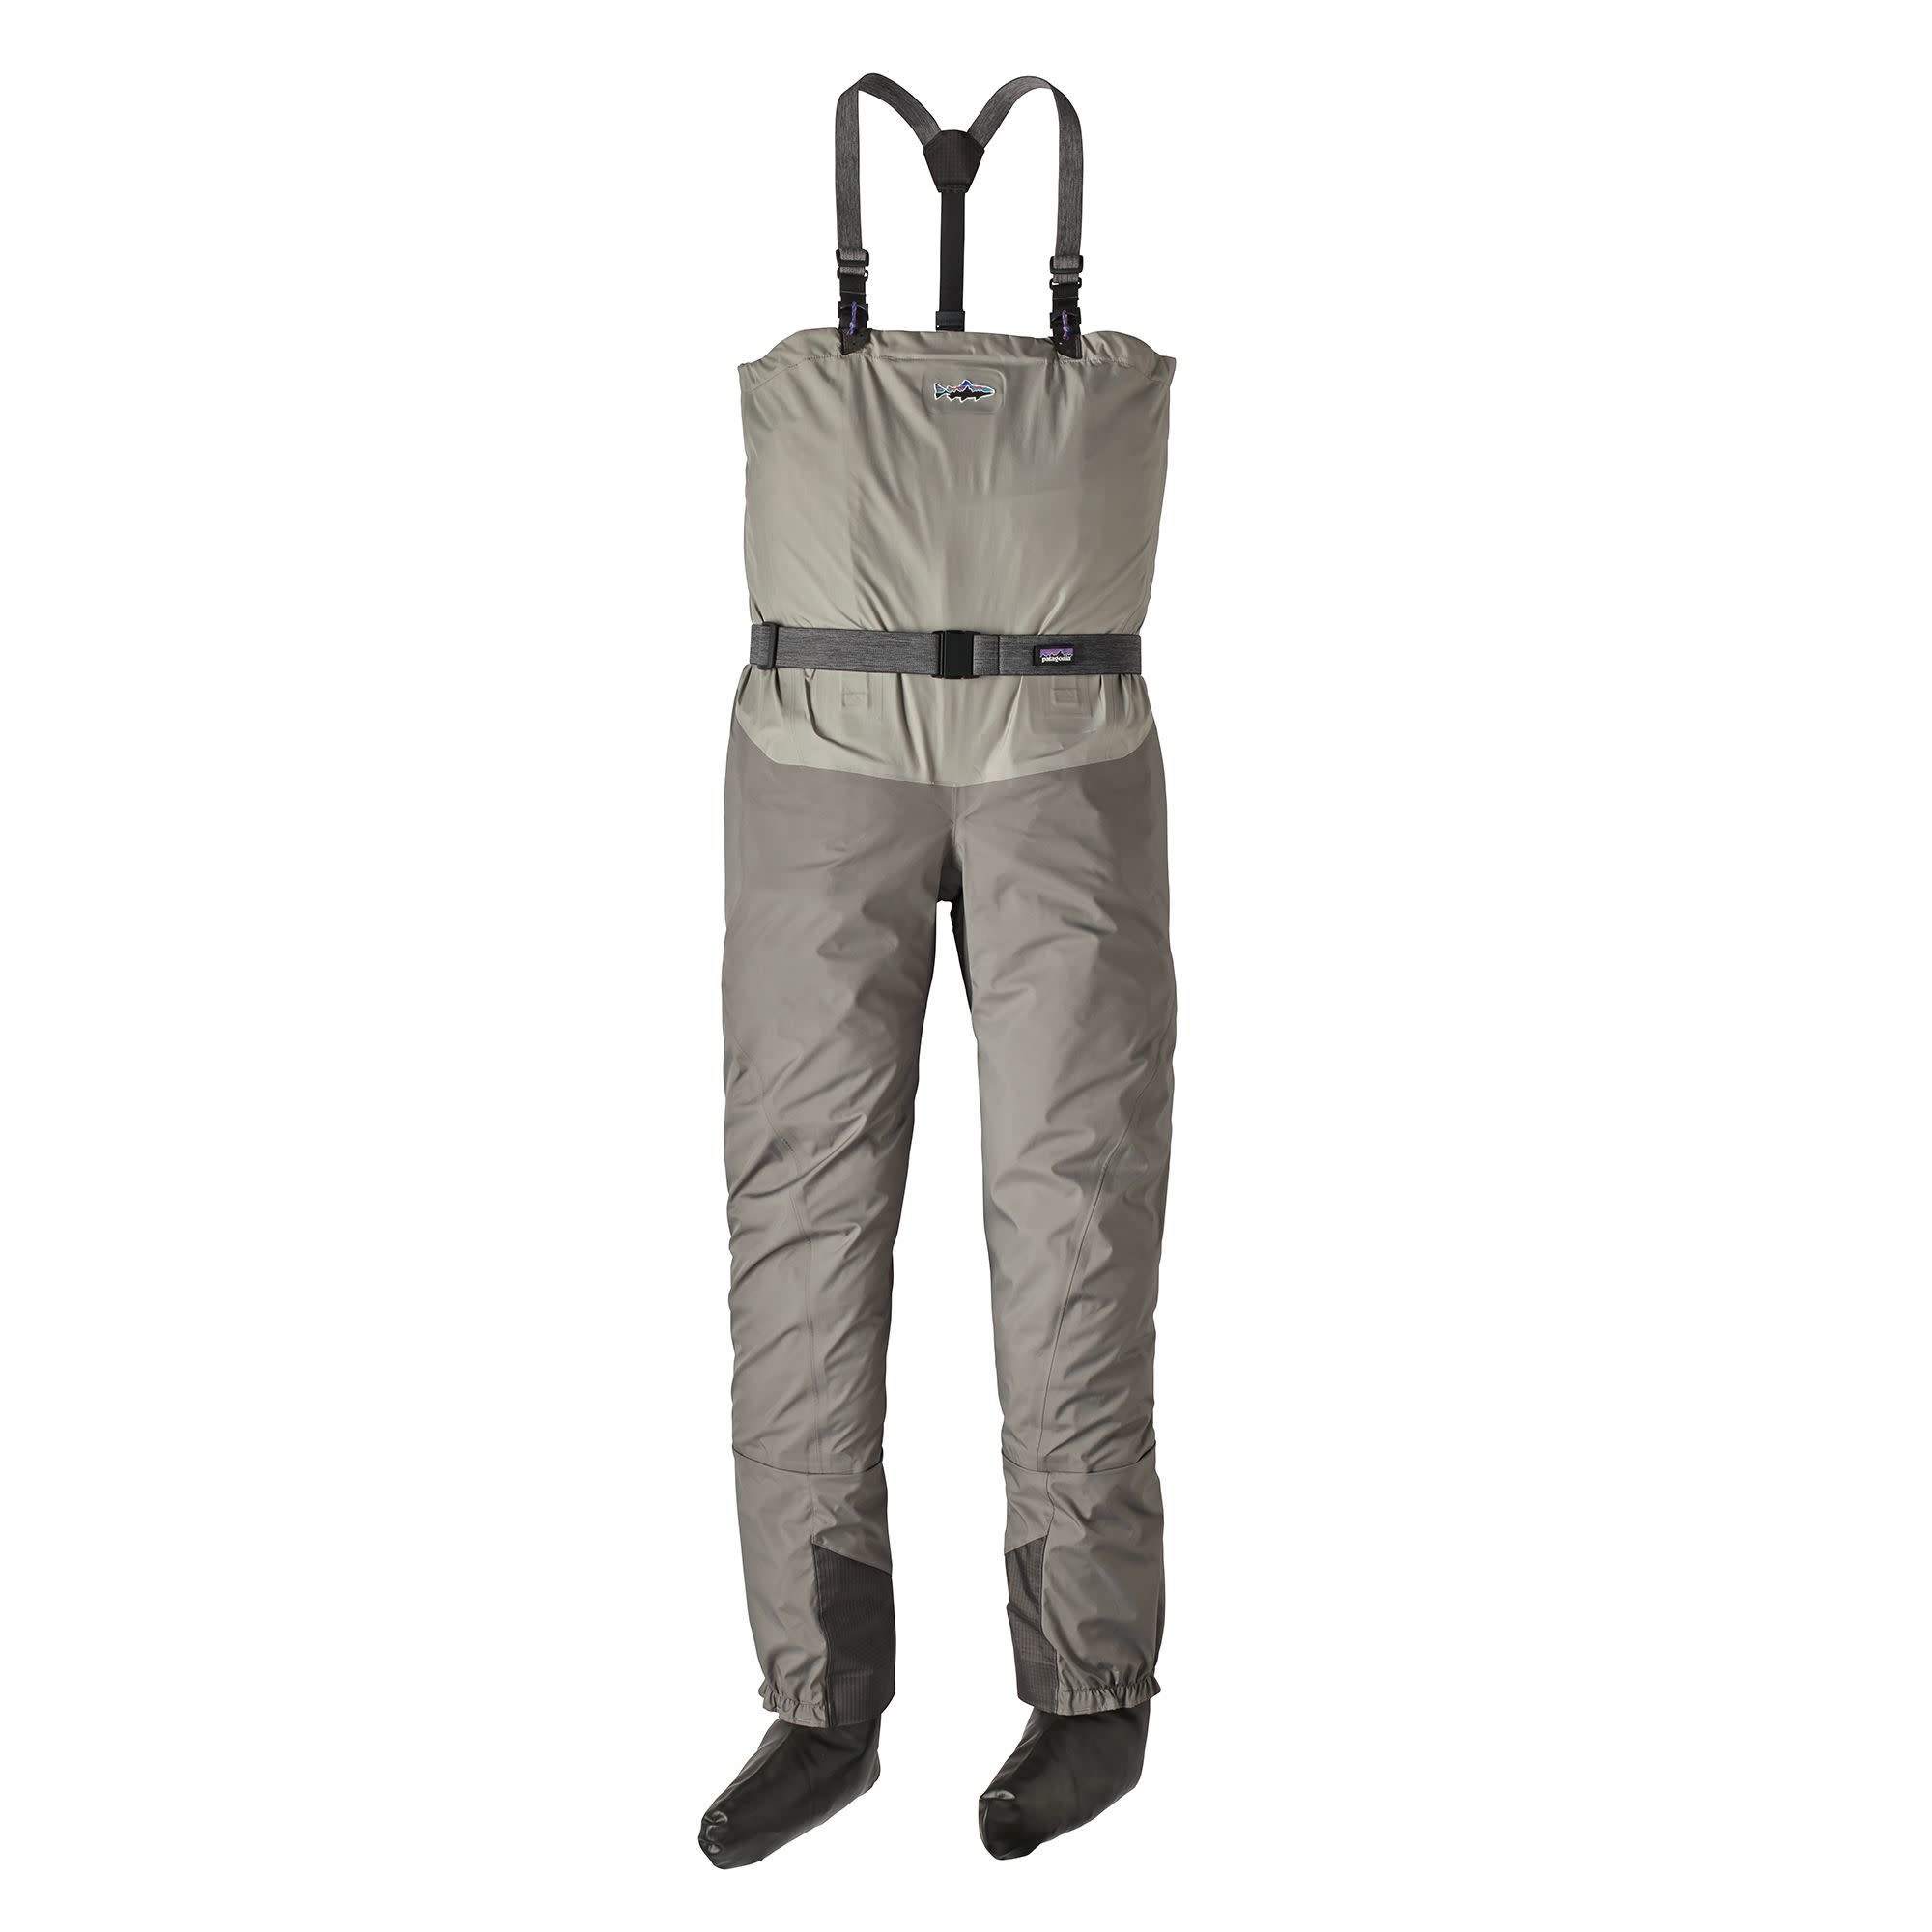 Patagonia Middle Fork Packable Wader 40% Off